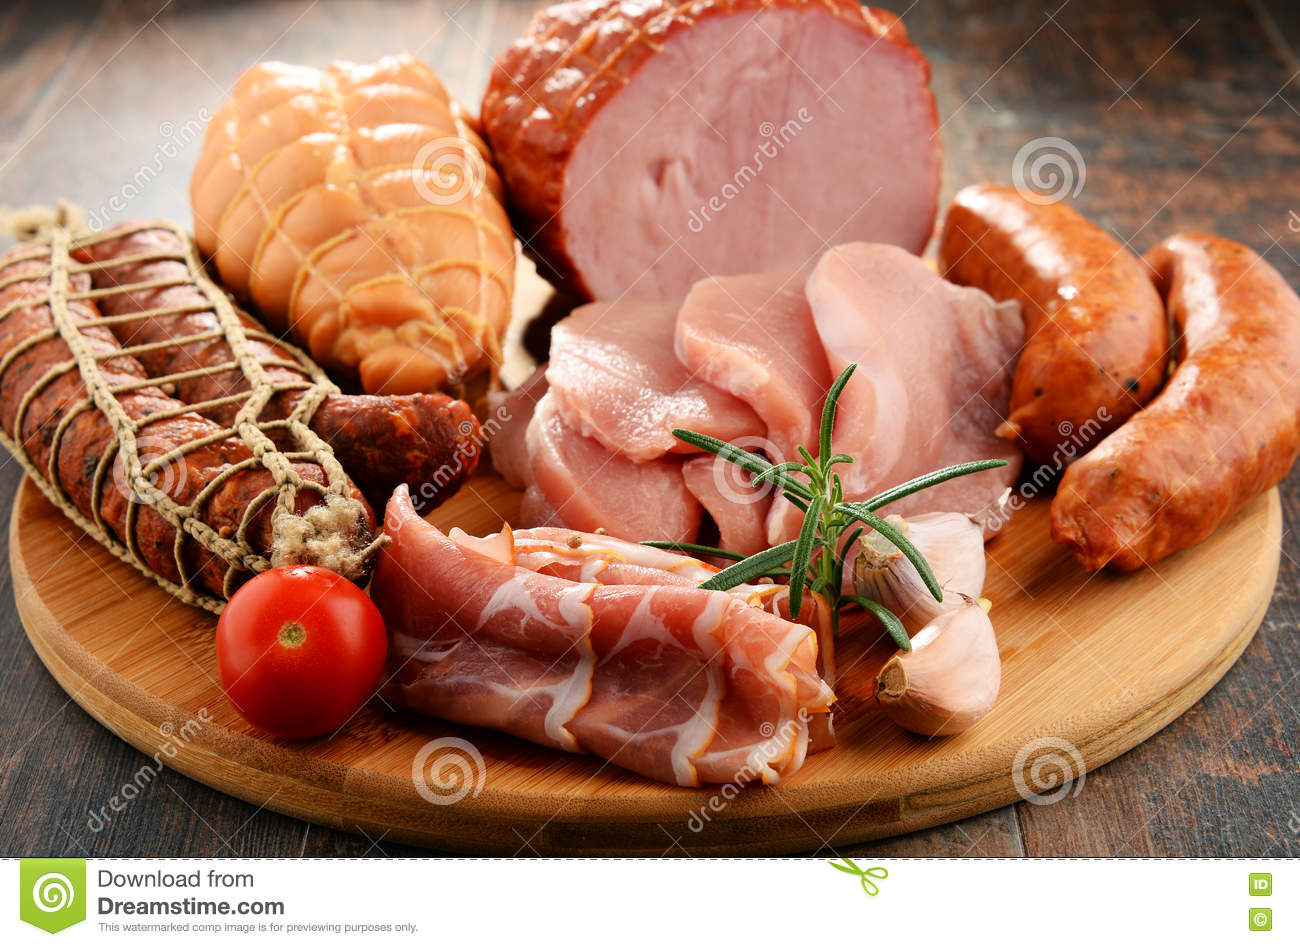 Download Meat Products Including Ham And Sausages Stock Photo - Image of beef, butcher: 79257542